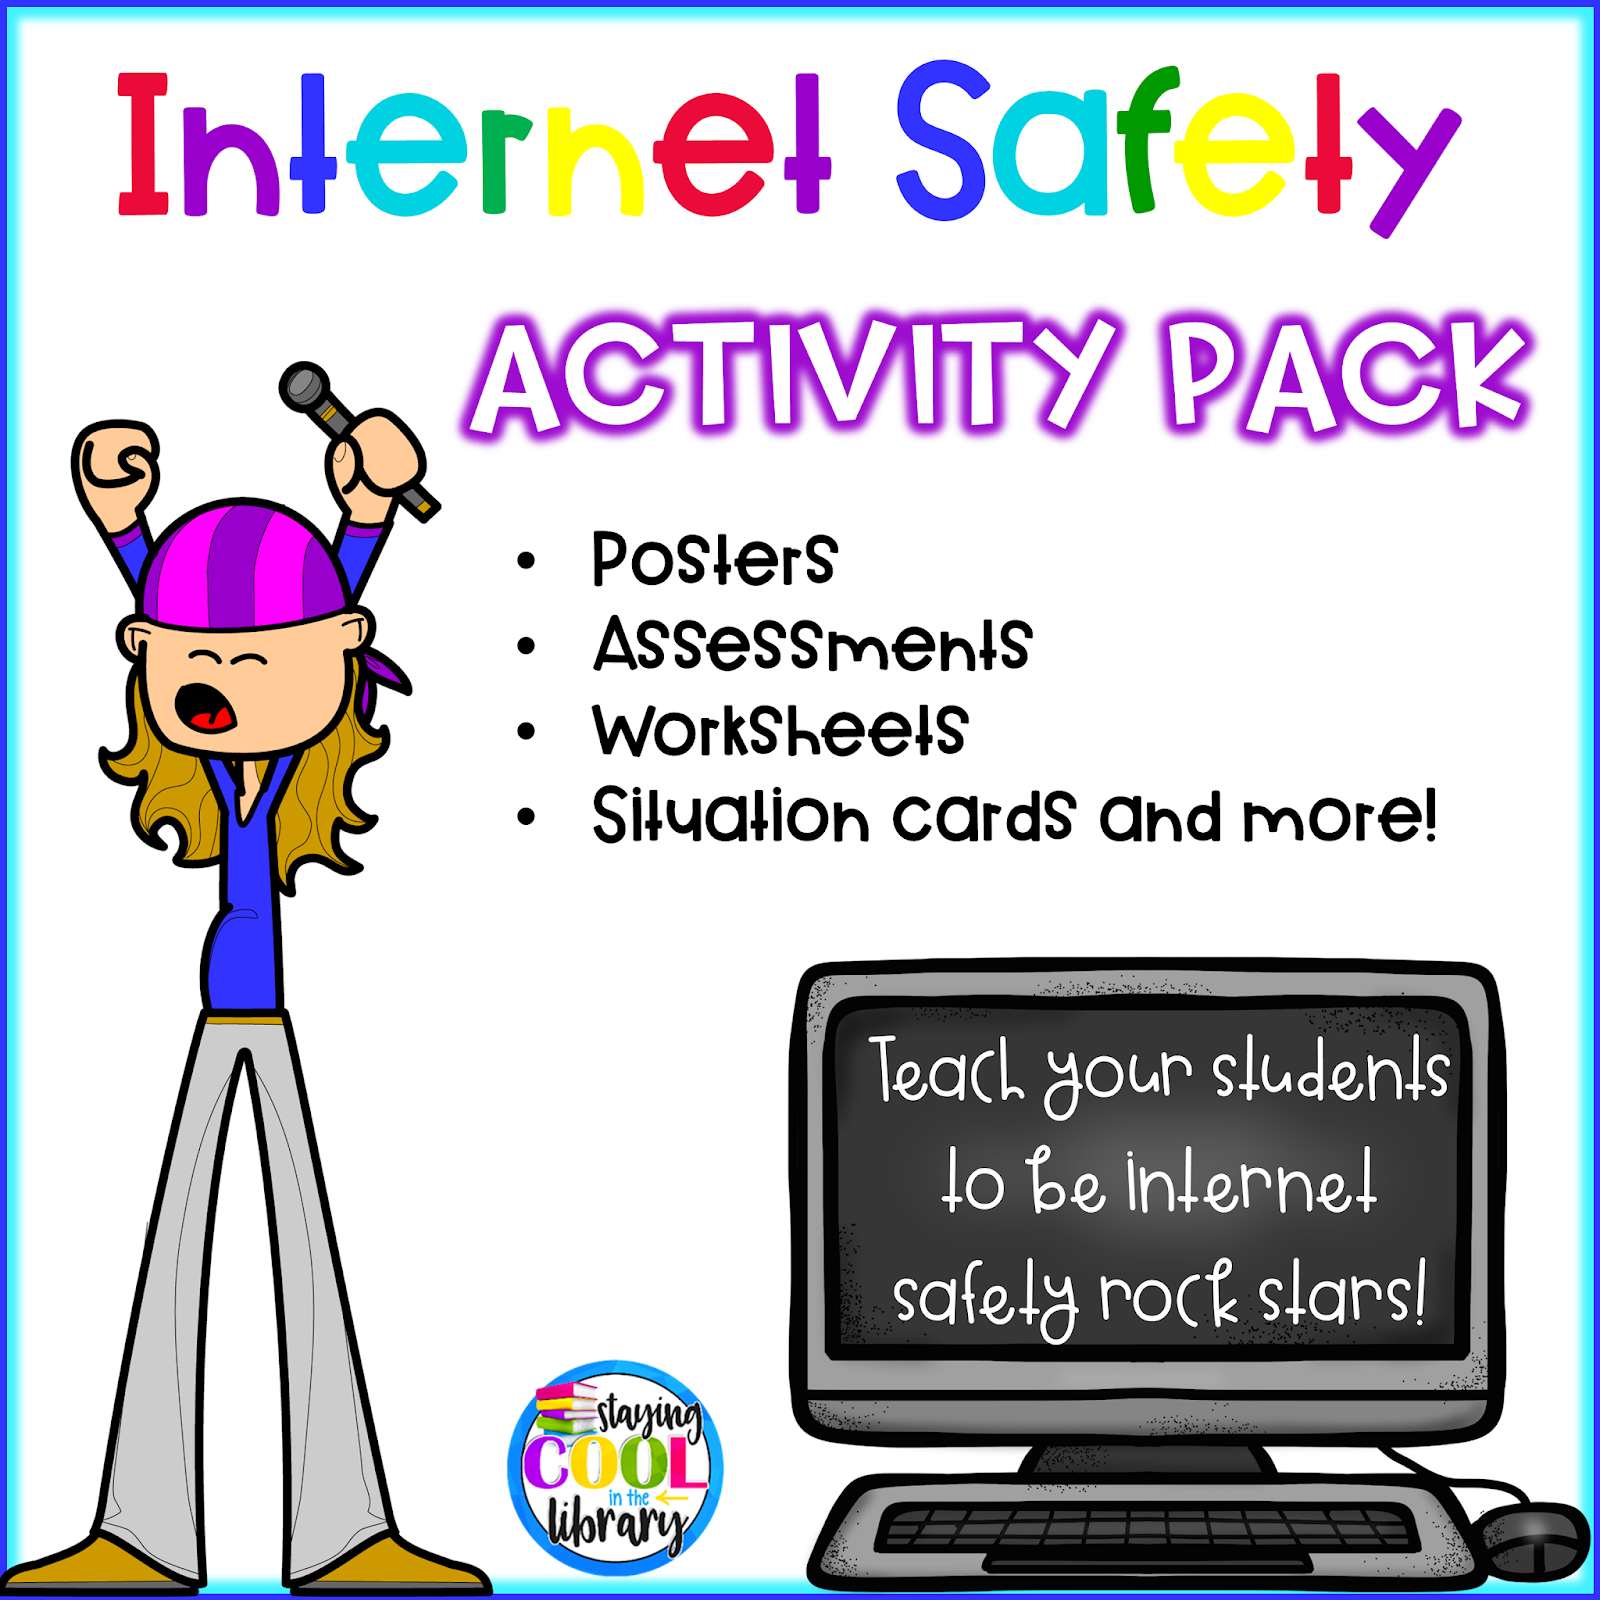 Cyberbullying Resources For Elementary Students